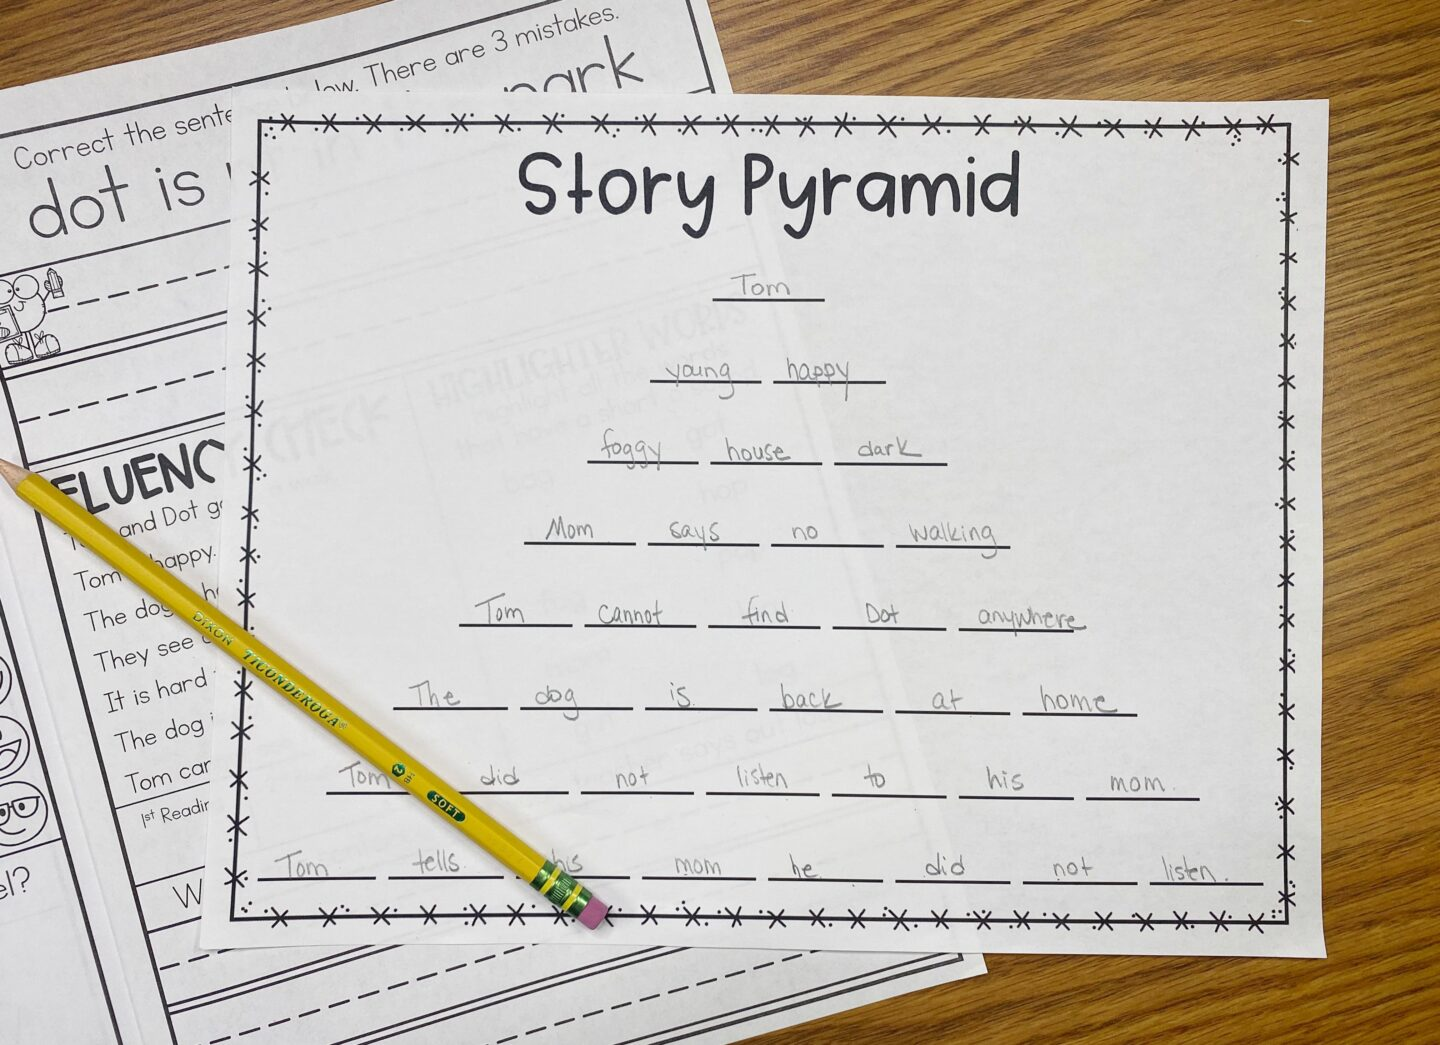 Image of a Story Pyramid Worksheet used for Things to do After Reading Together in a Small Group